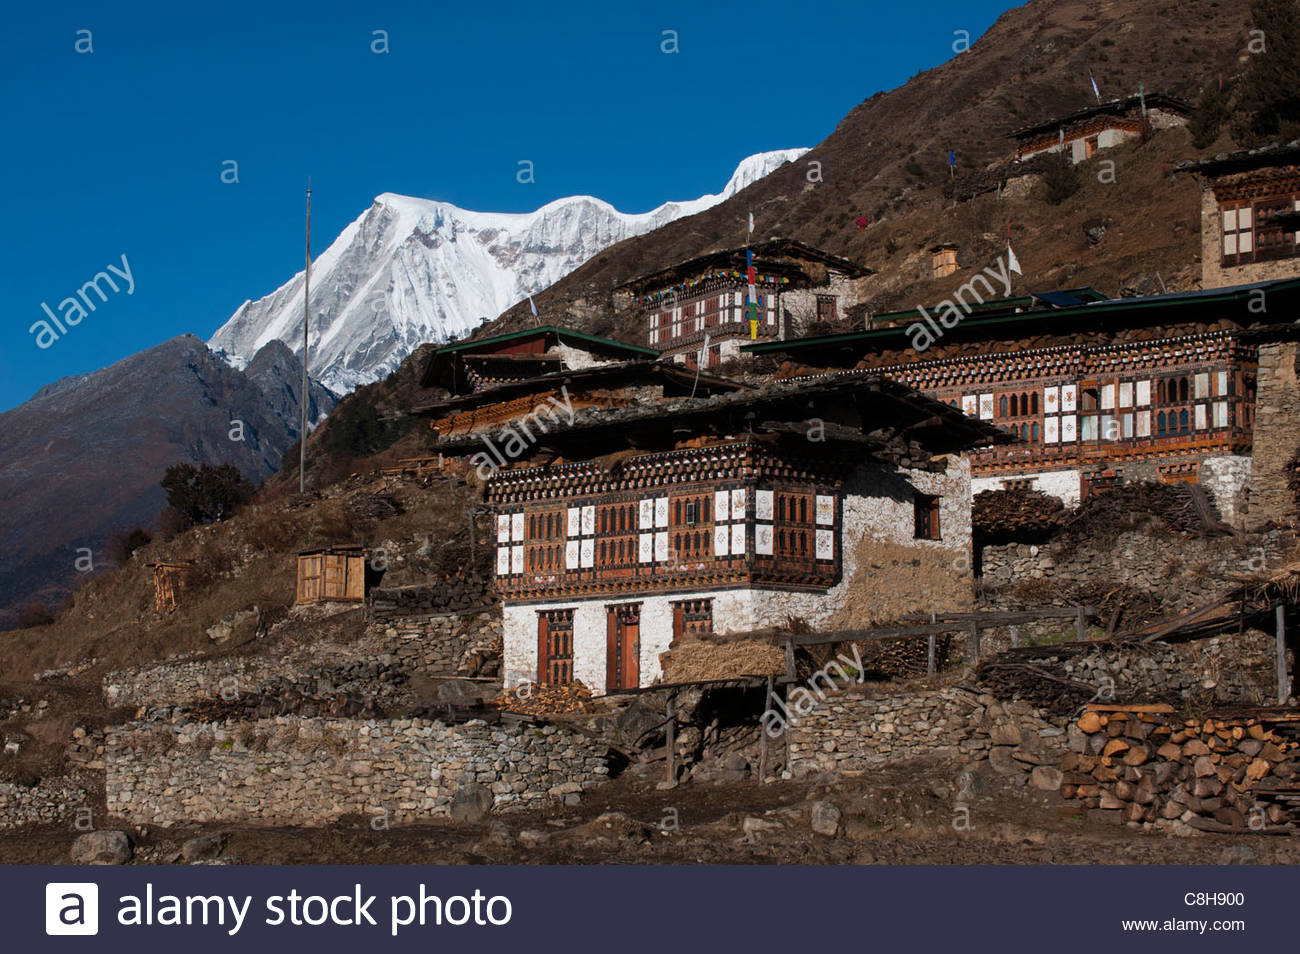 The spectacular village of Laya in Bhutan with Masagang visible behind - Stock Image